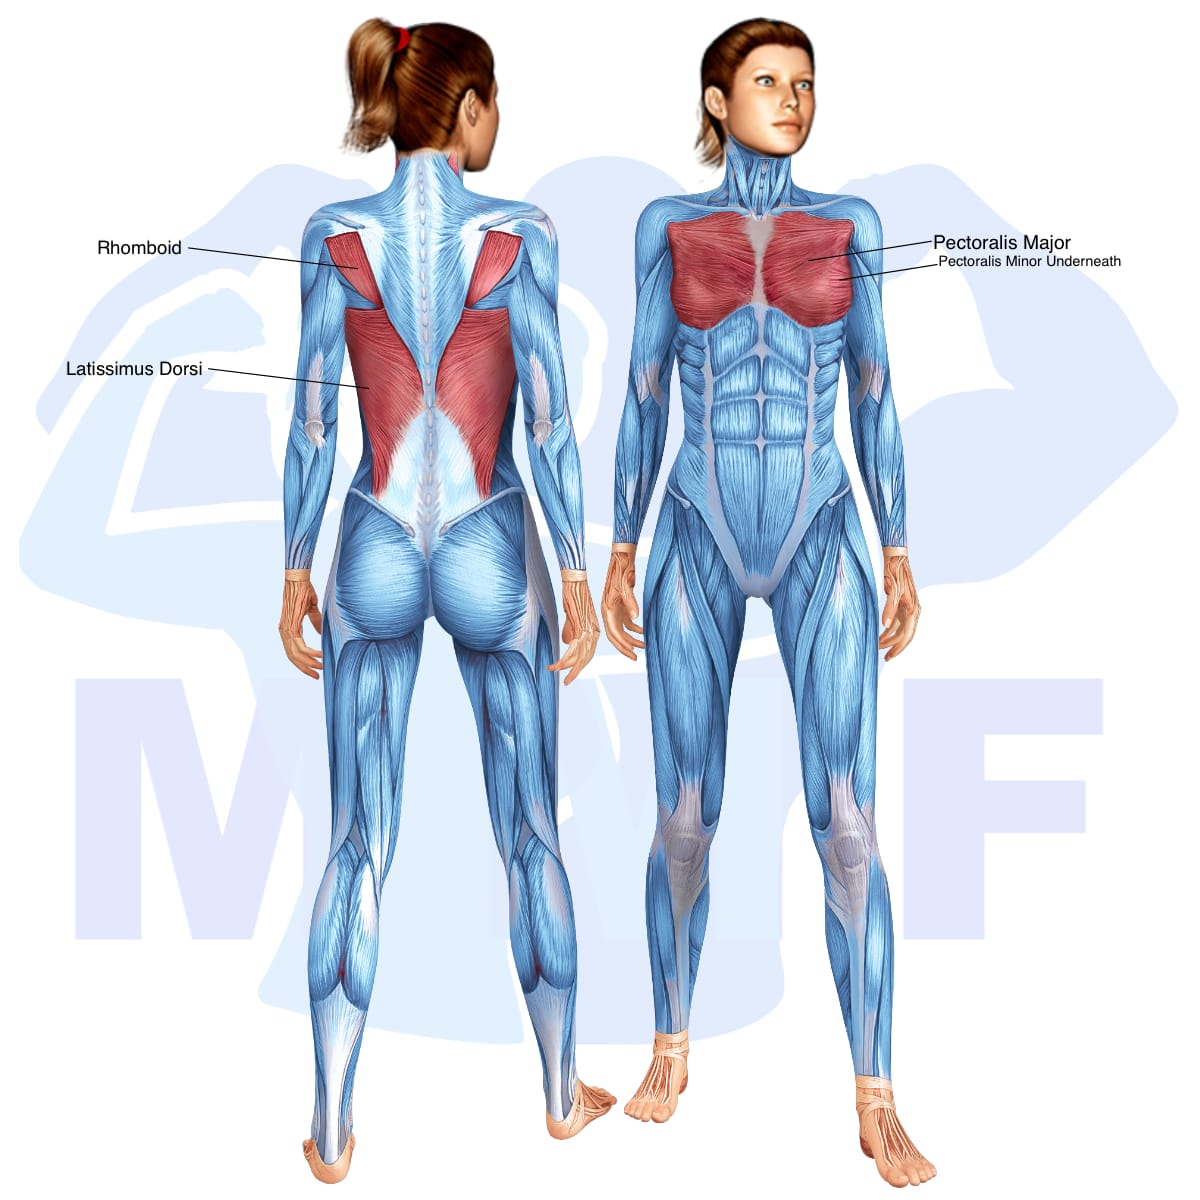 Skeletal muscle systems for a muscular woman, with muscles highlighted in red that are use during resistance band low chest flys.